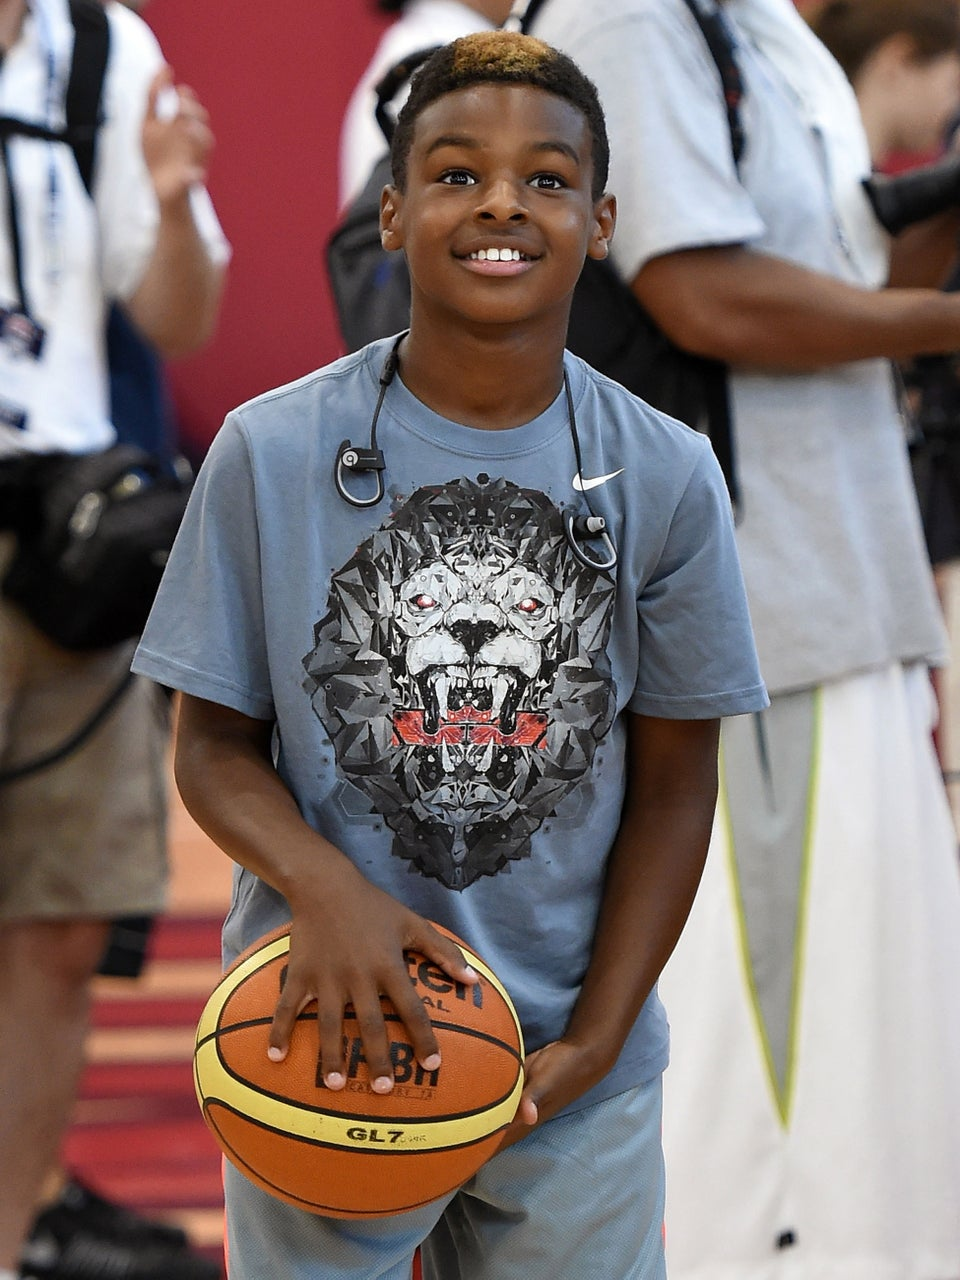 Proud Mom Savannah James Shares Clip Of Son LeBron Jr. Teaching Himself To Play The Piano